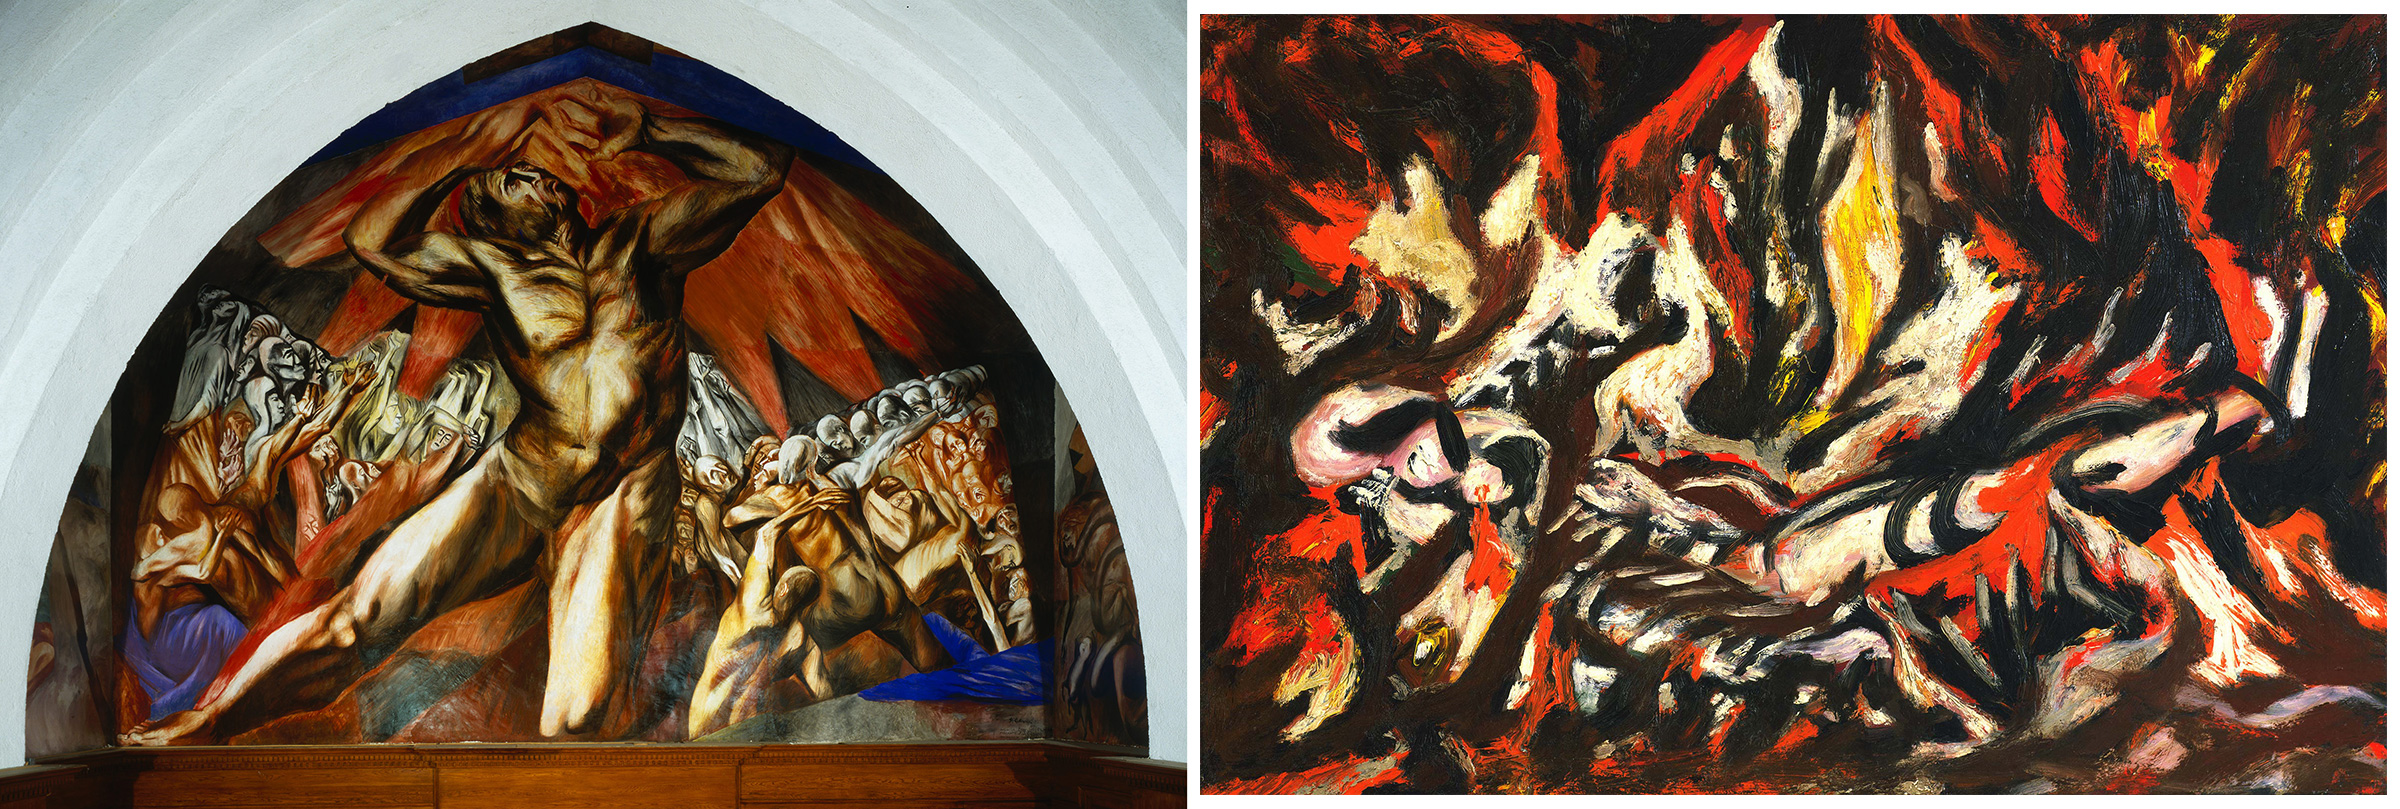 Left: José Clemente Orozco, Reproduction of Prometheus, 1930; Right: Jackson Pollock, The Flame , 1934–38